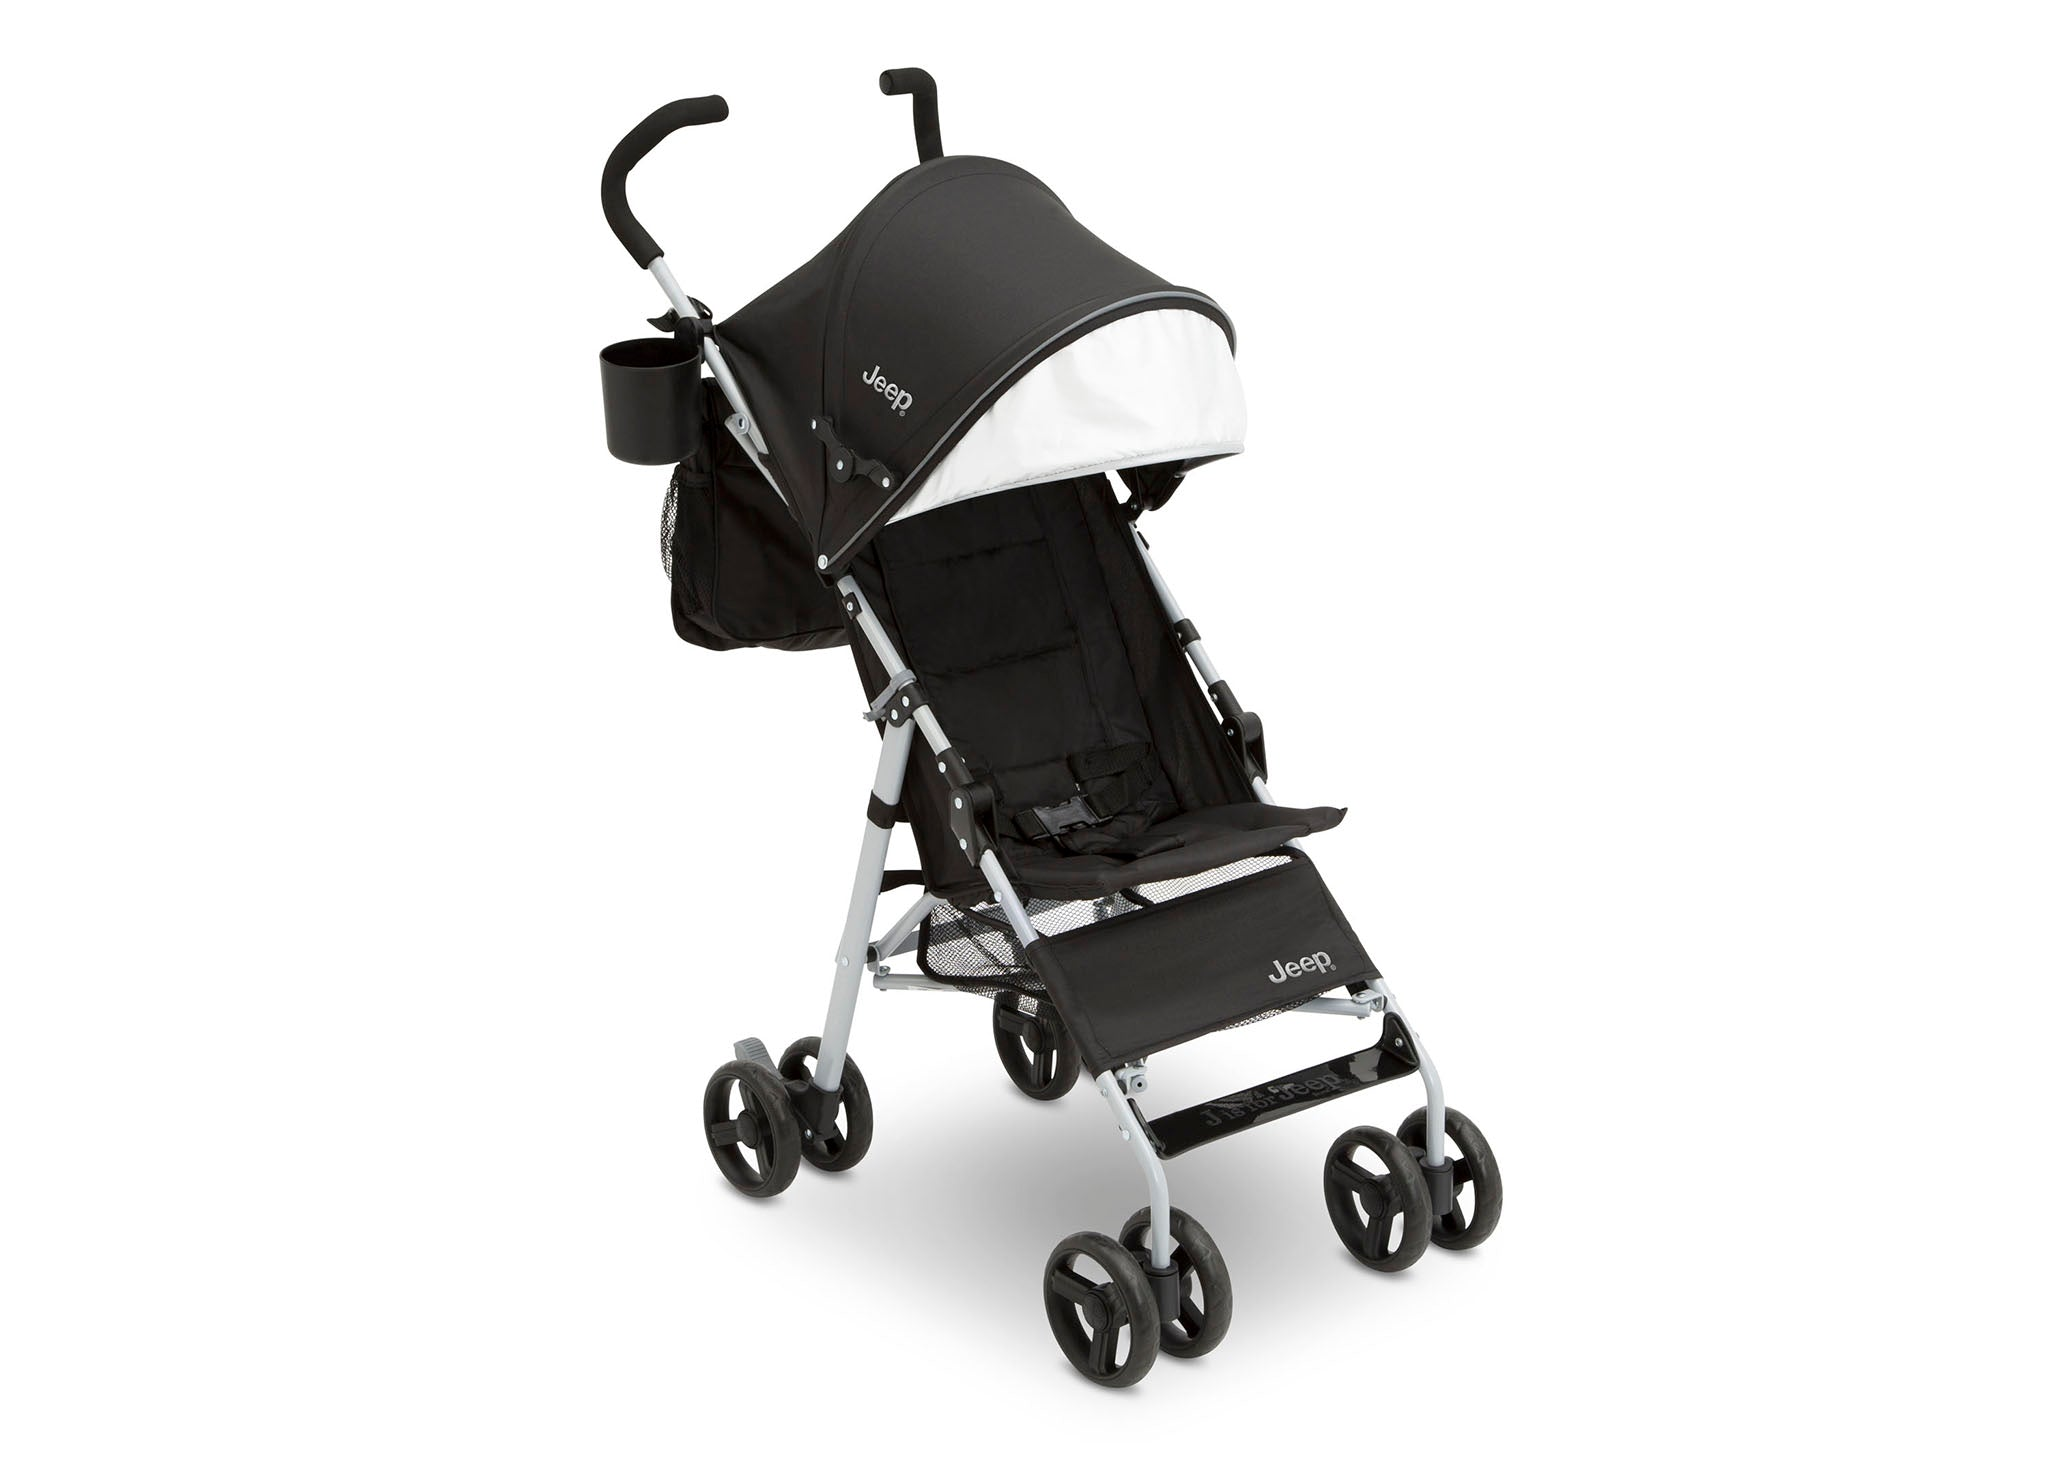 Jeep North Star Stroller by Delta Children, Black with Neutral Grey (2277), with padded seat